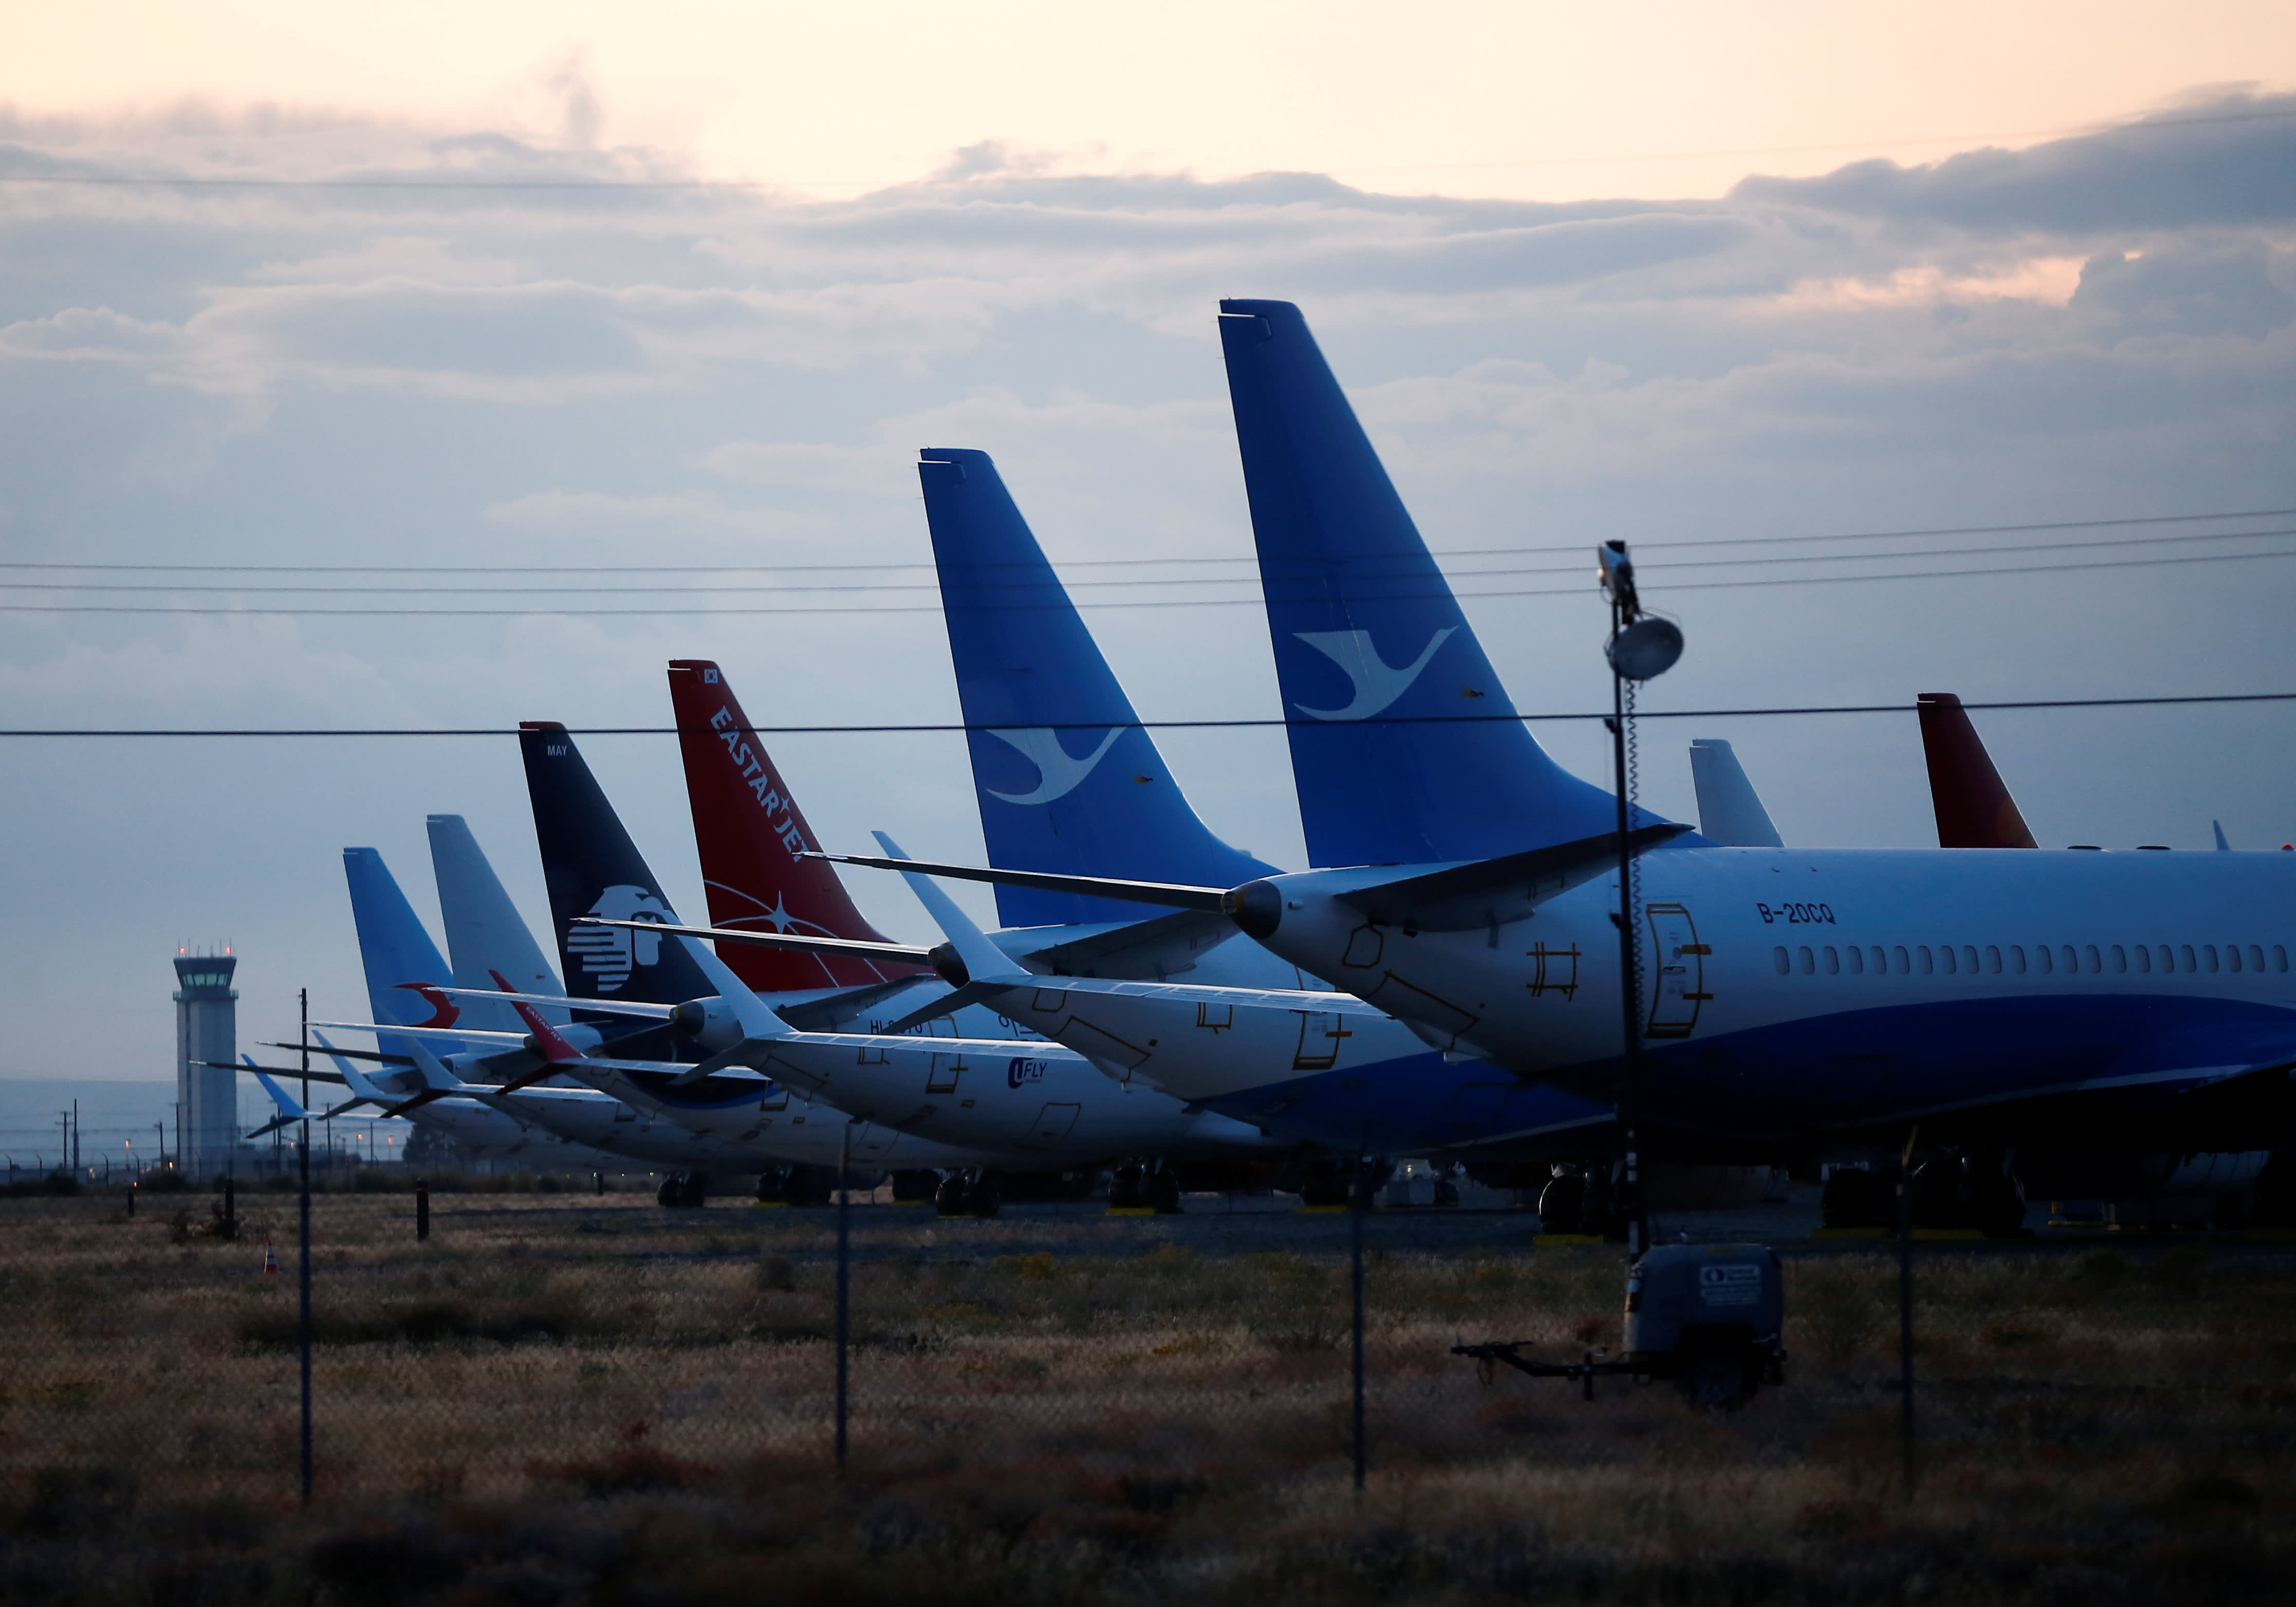 Boeing is in talks to borrow $10 billion or more as 737 Max crisis wears on